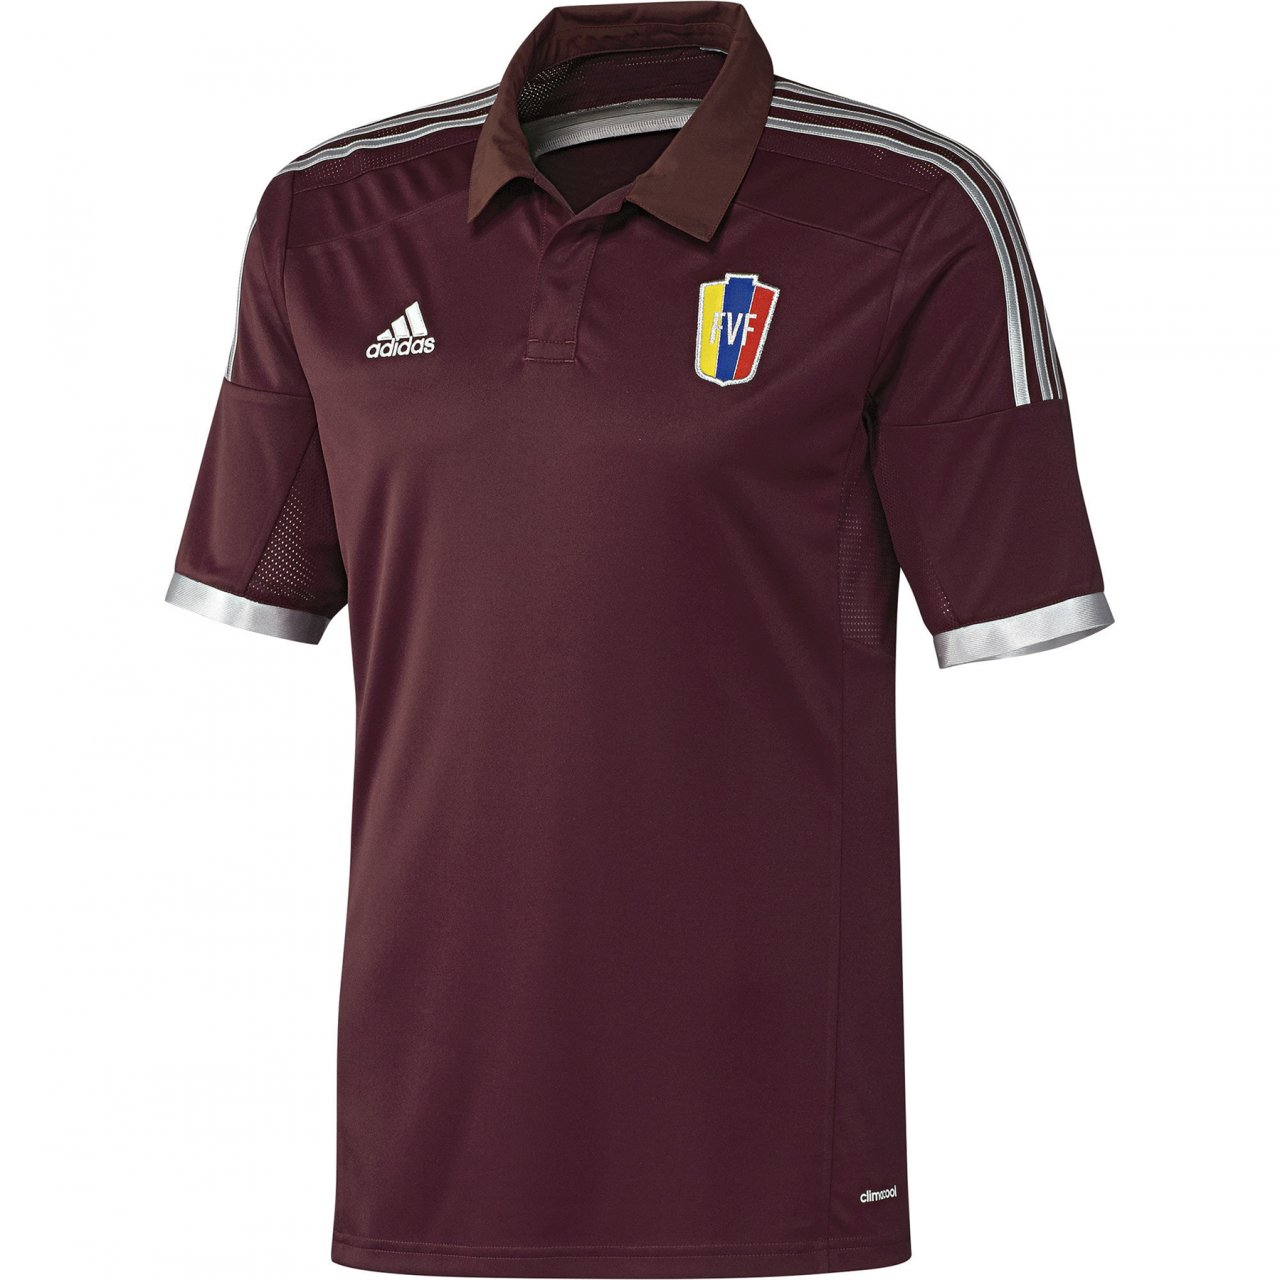 2014-15 Venezuela Home World Cup Football Shirt: Amazon.es: Deportes y aire libre